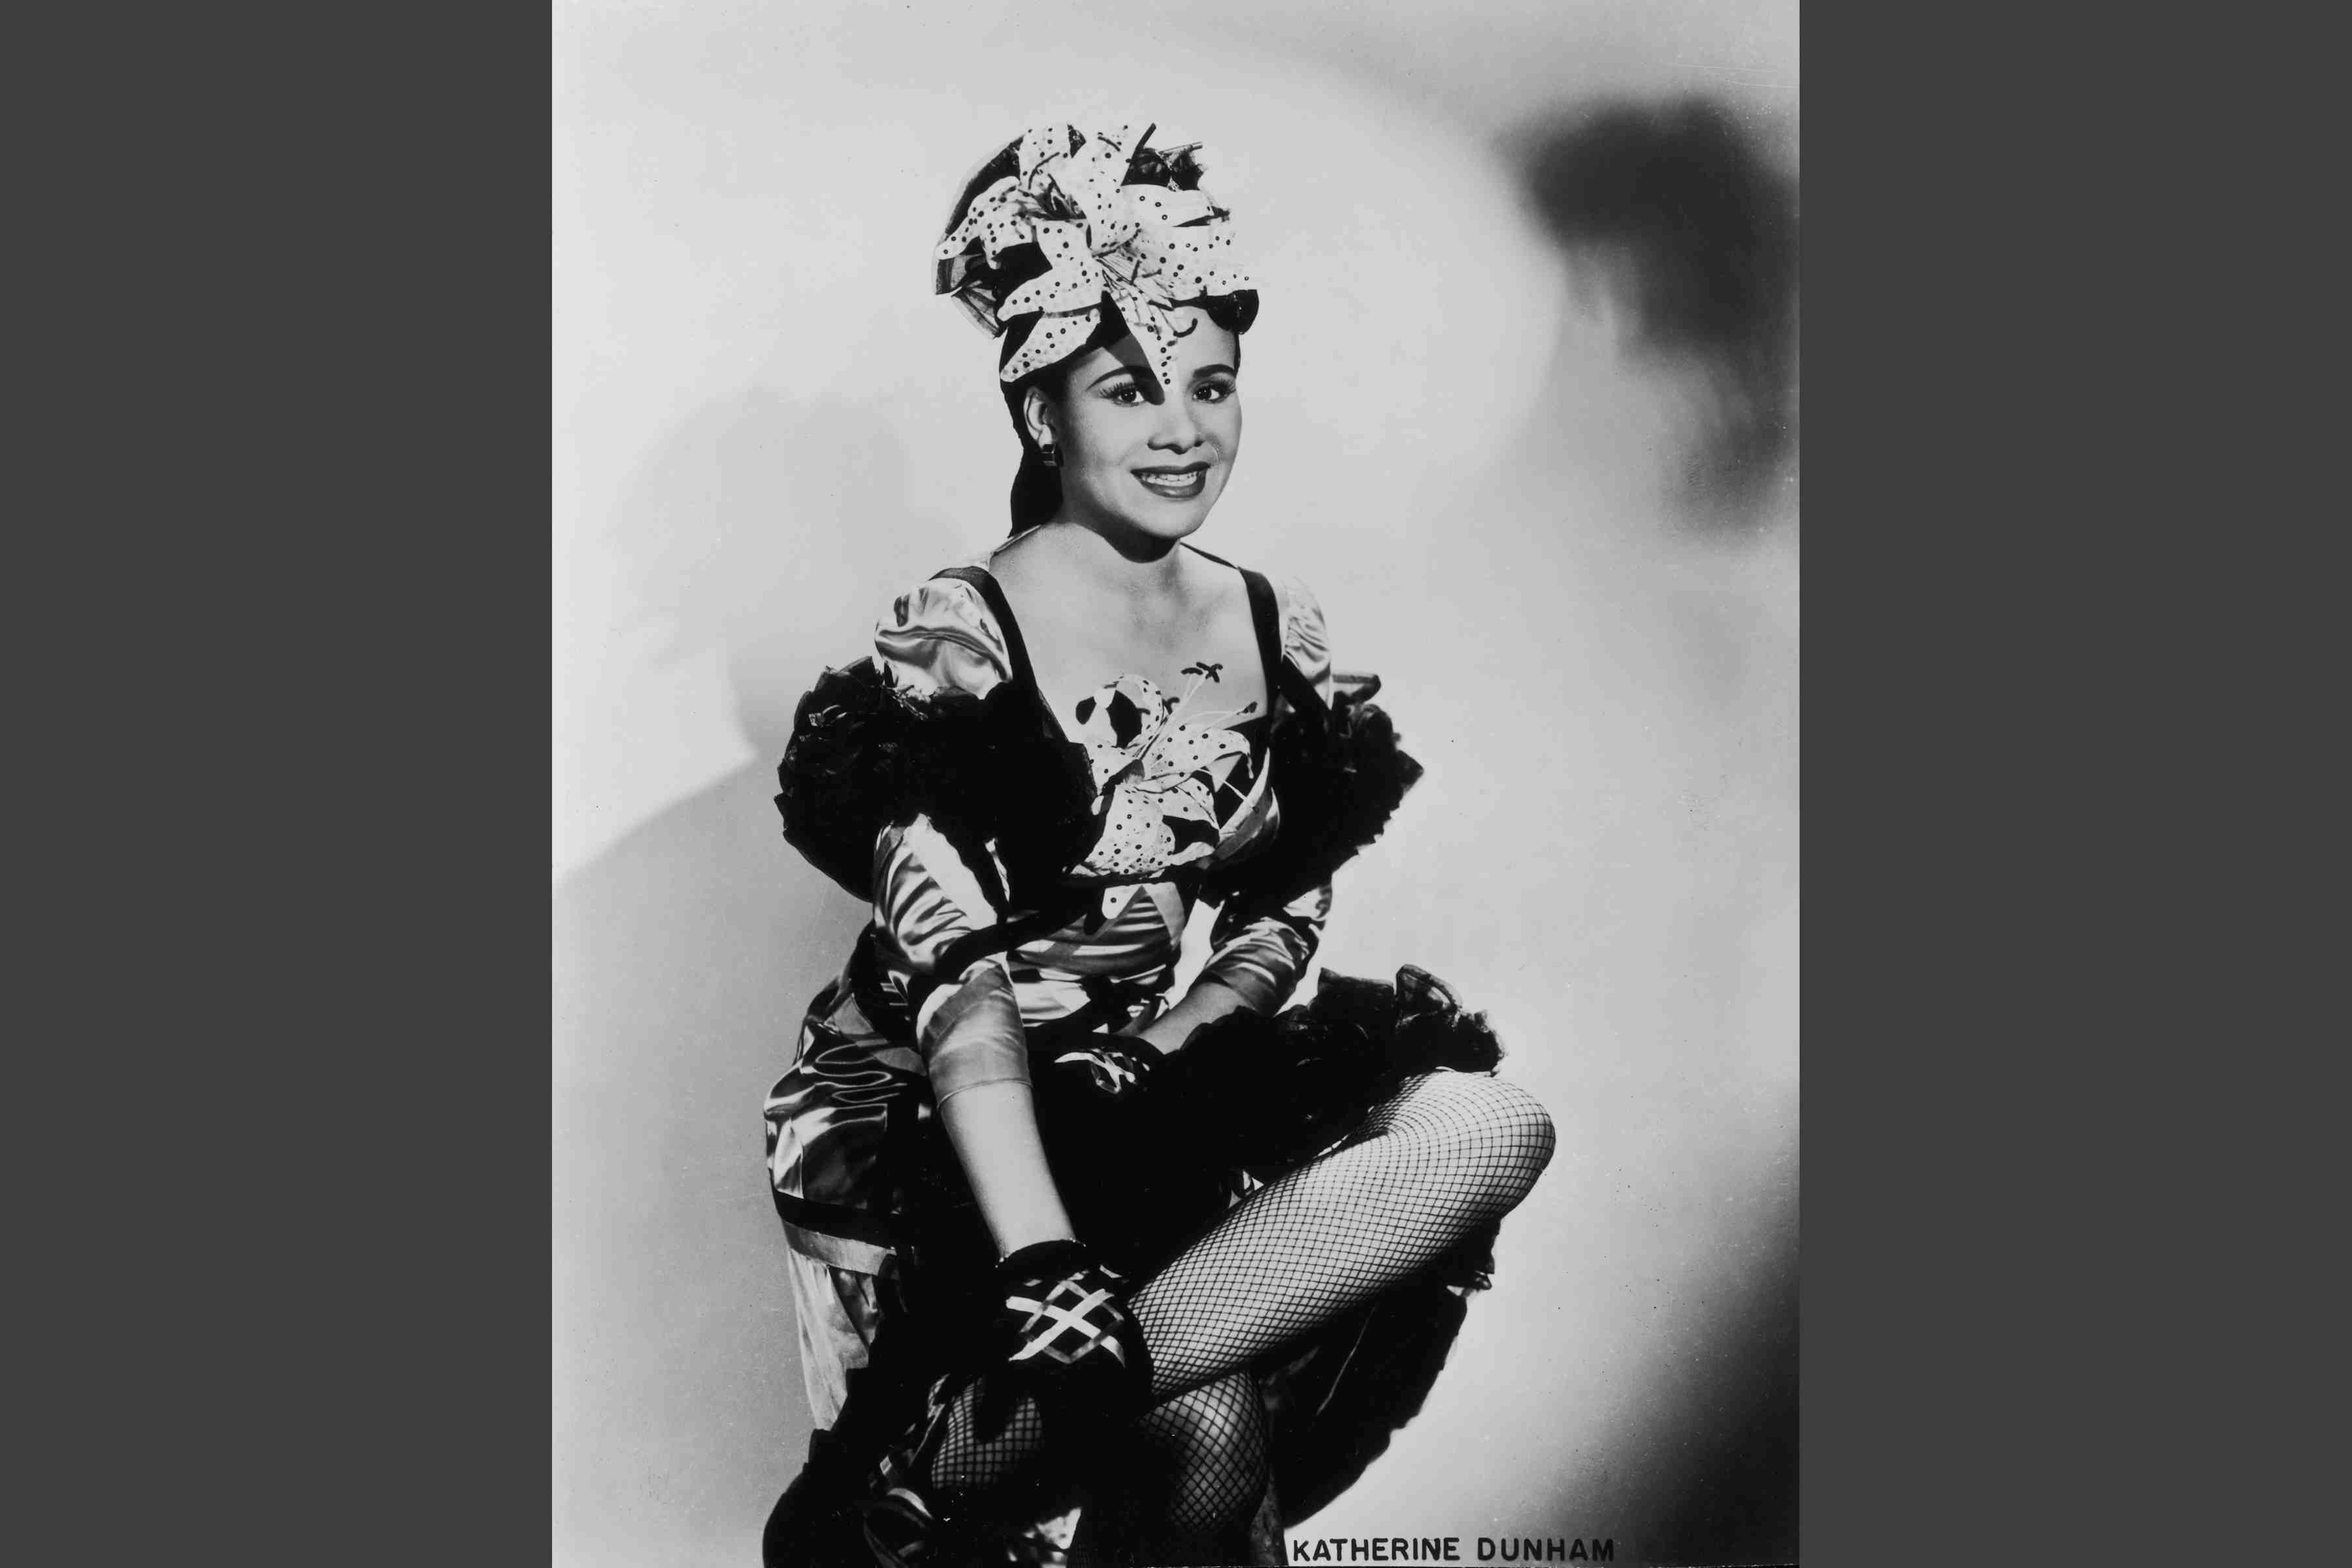 Katherine Dunham about 1945, wearing dance costume with ruffle tufts and artificial orchids